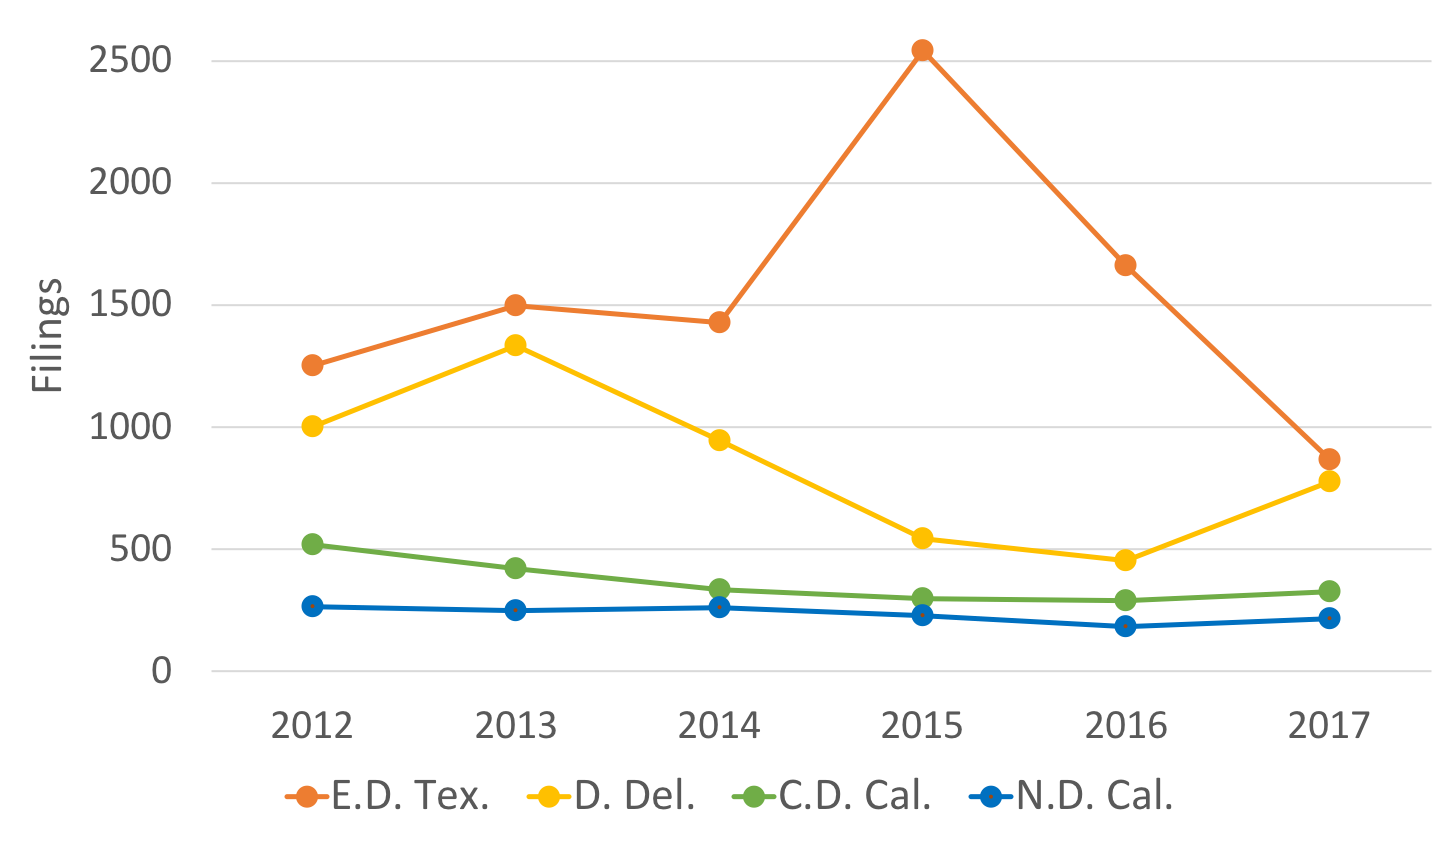 23 1 2018 brics tc heartland is likely responsible for the decline in cases filed in ed tex and the uptick in districts like d del and nd cal though in neither of fandeluxe Choice Image